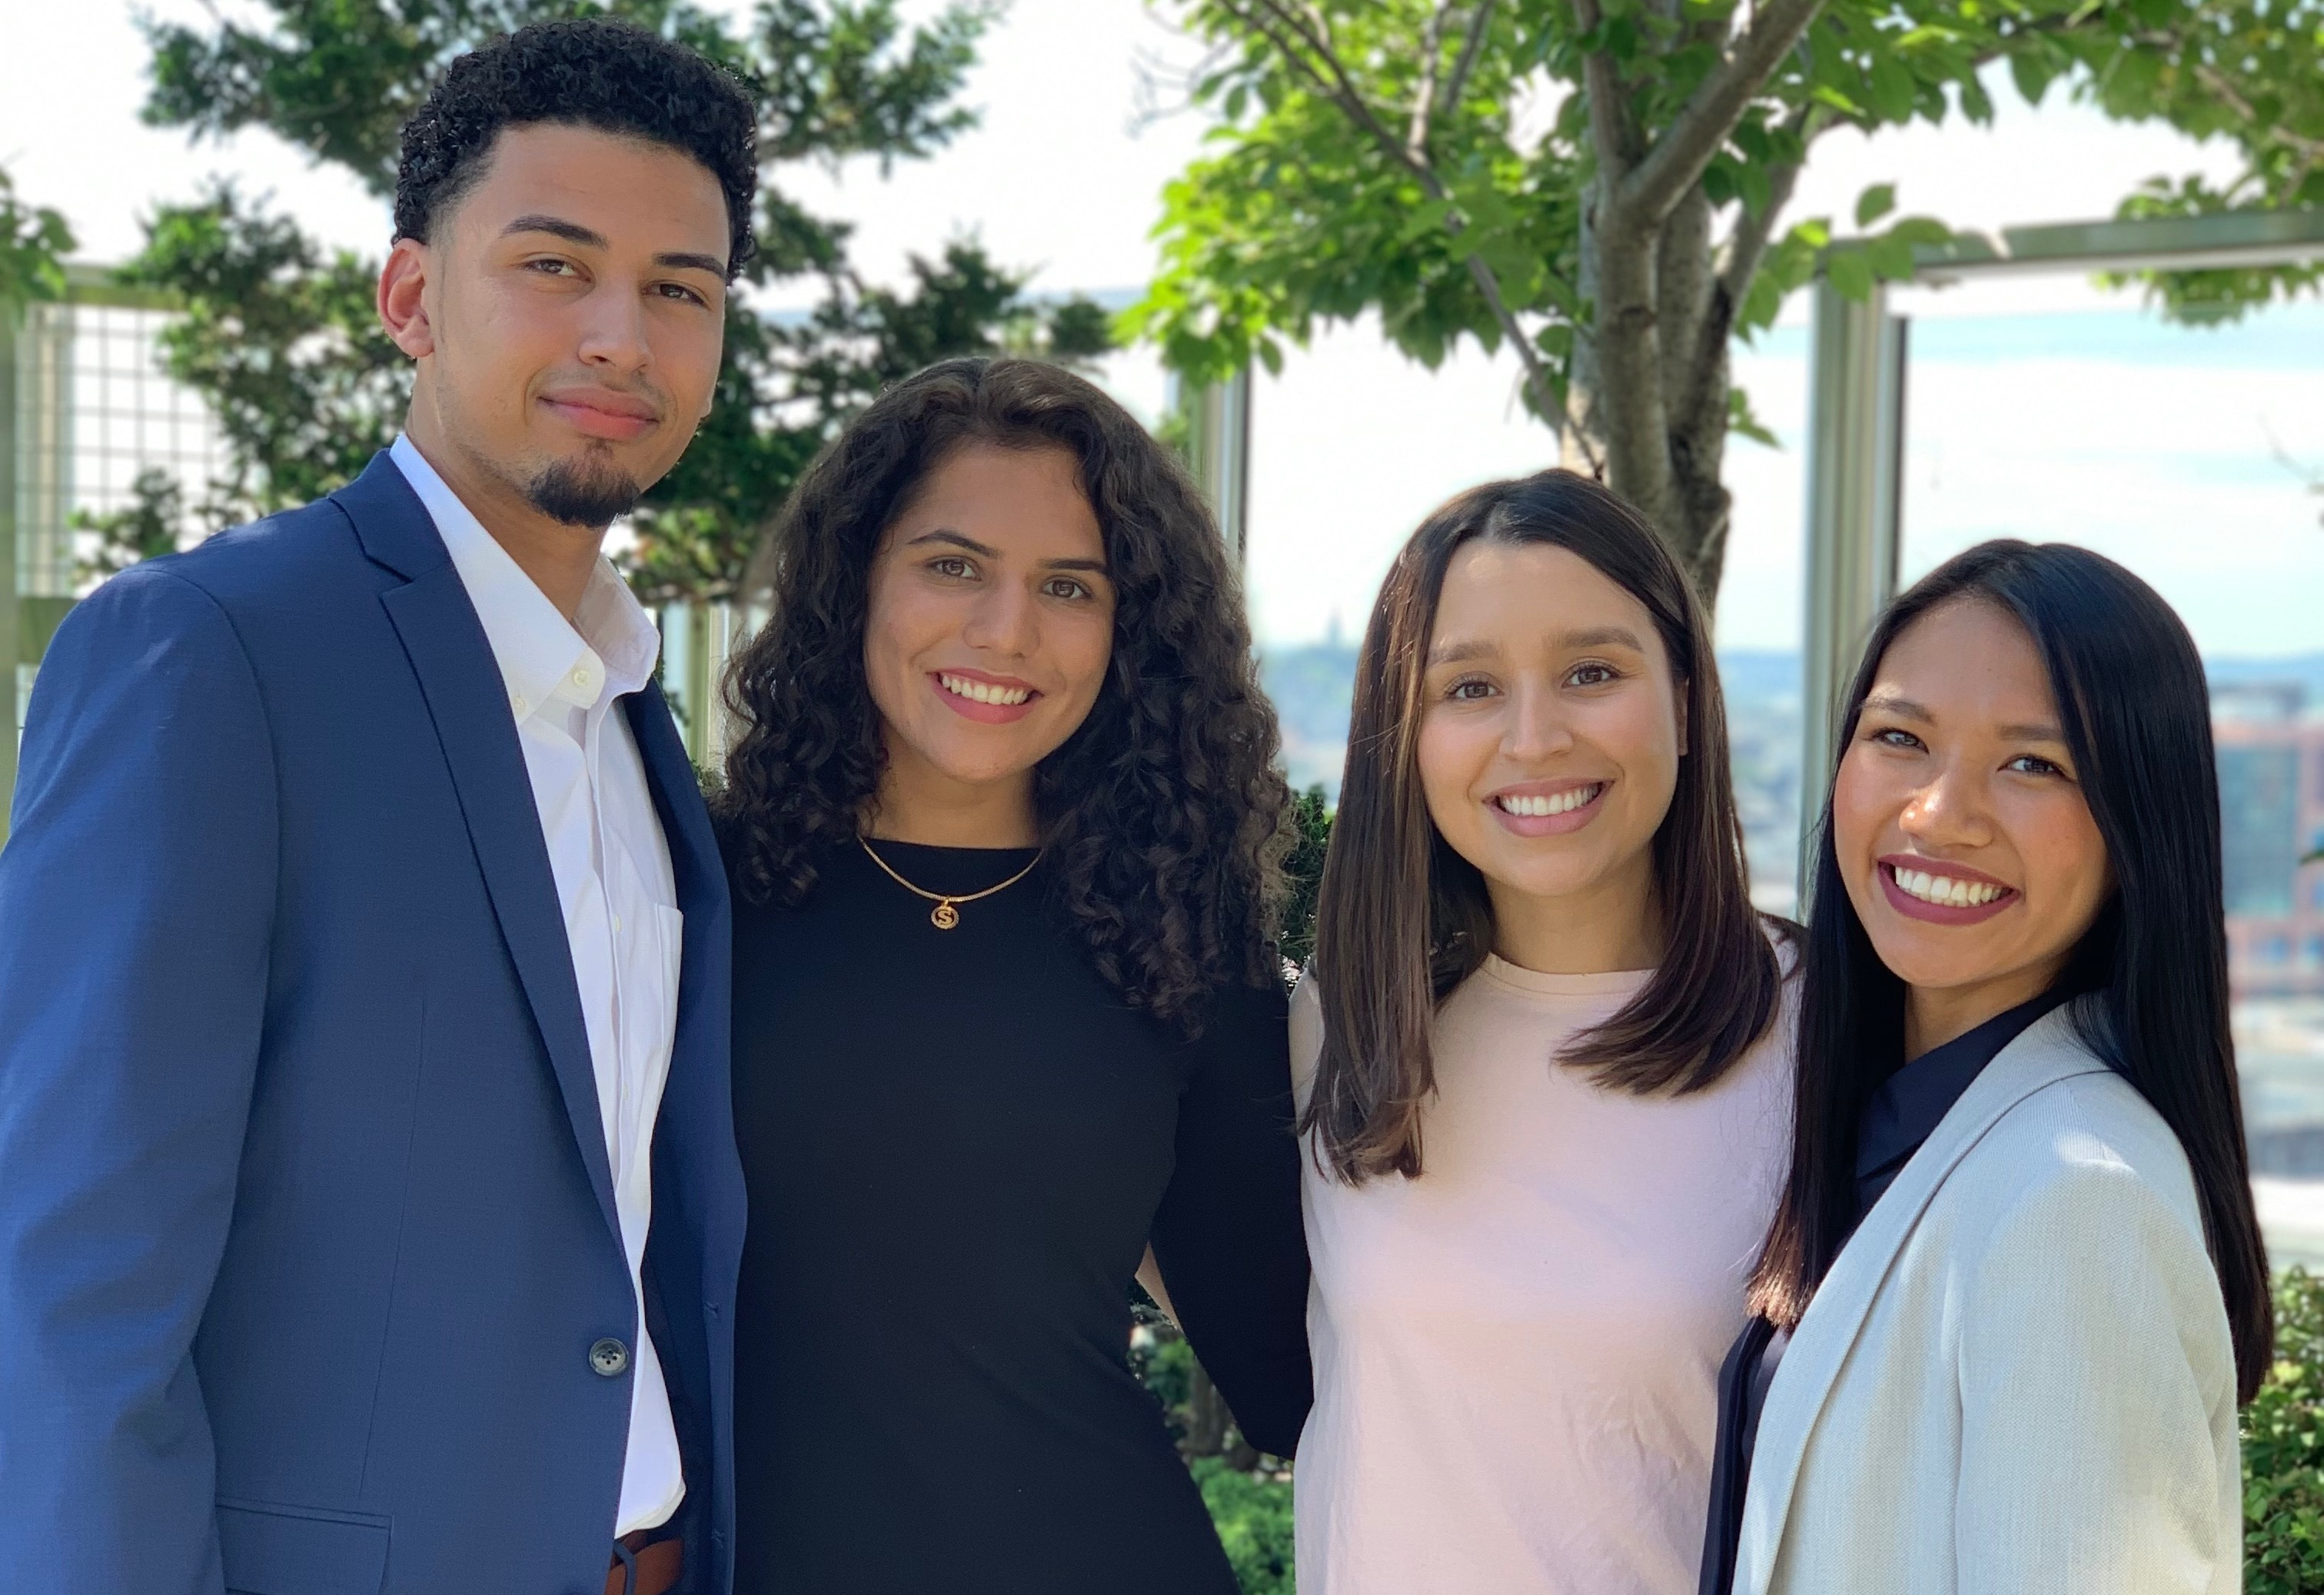 Posse Scholars at Fidelity Investments Asset Management's DISE (Diverse Investors Student Experience) program in 2019, founded by UW-Madison alumna Catalina Hernandez. Left to right: Fernando Barrientos (Denison University), Samantha Harrington, Catalina Hernandez and Camille Raven Molas (Pomona College).